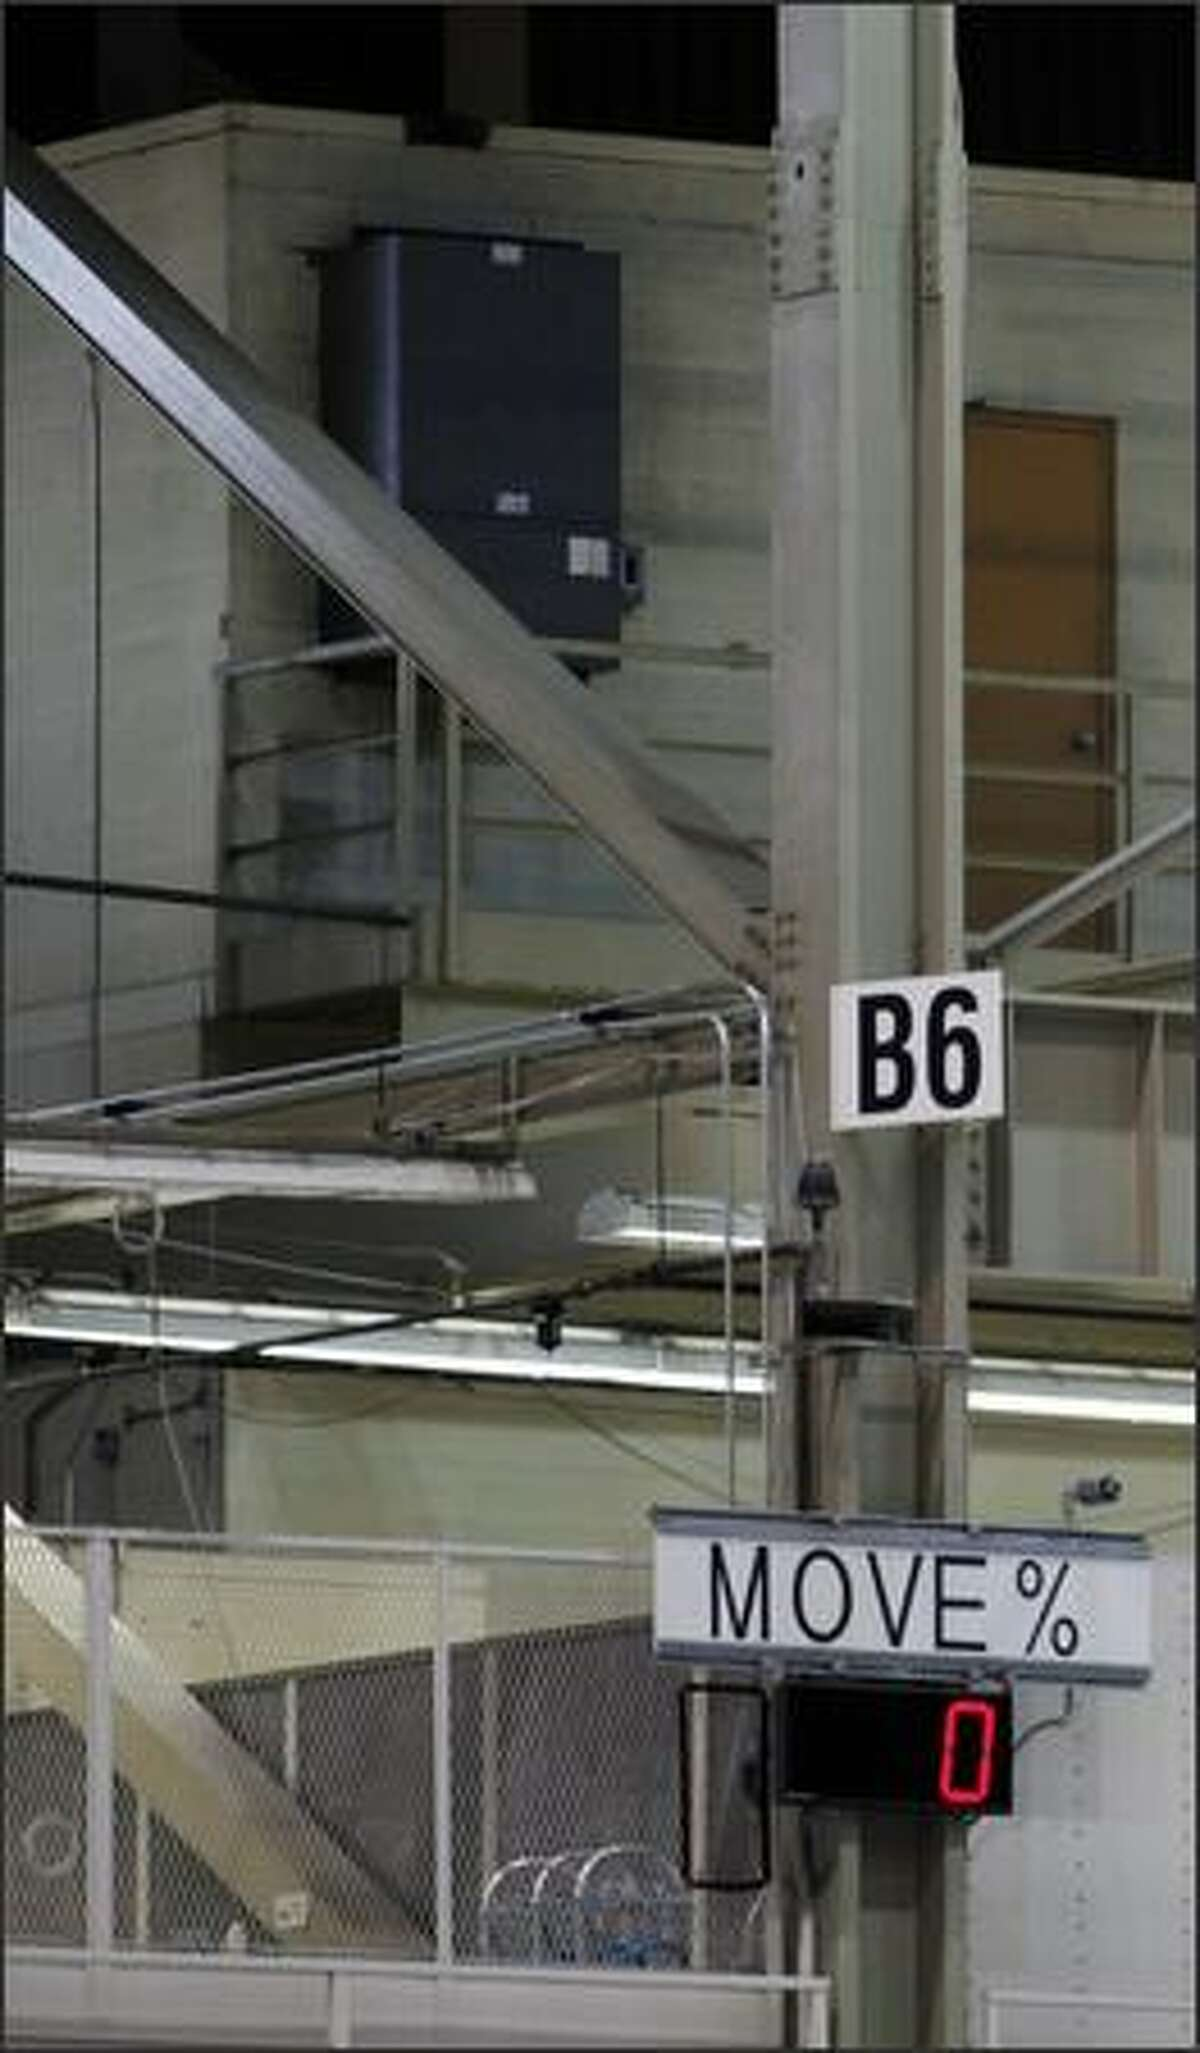 Electronic signs are displayed to help workers and management identify and fix problems along the assembly line. This sign's 0 percent move indicates that no planes have moved forward on the assembly line by that point in the day.